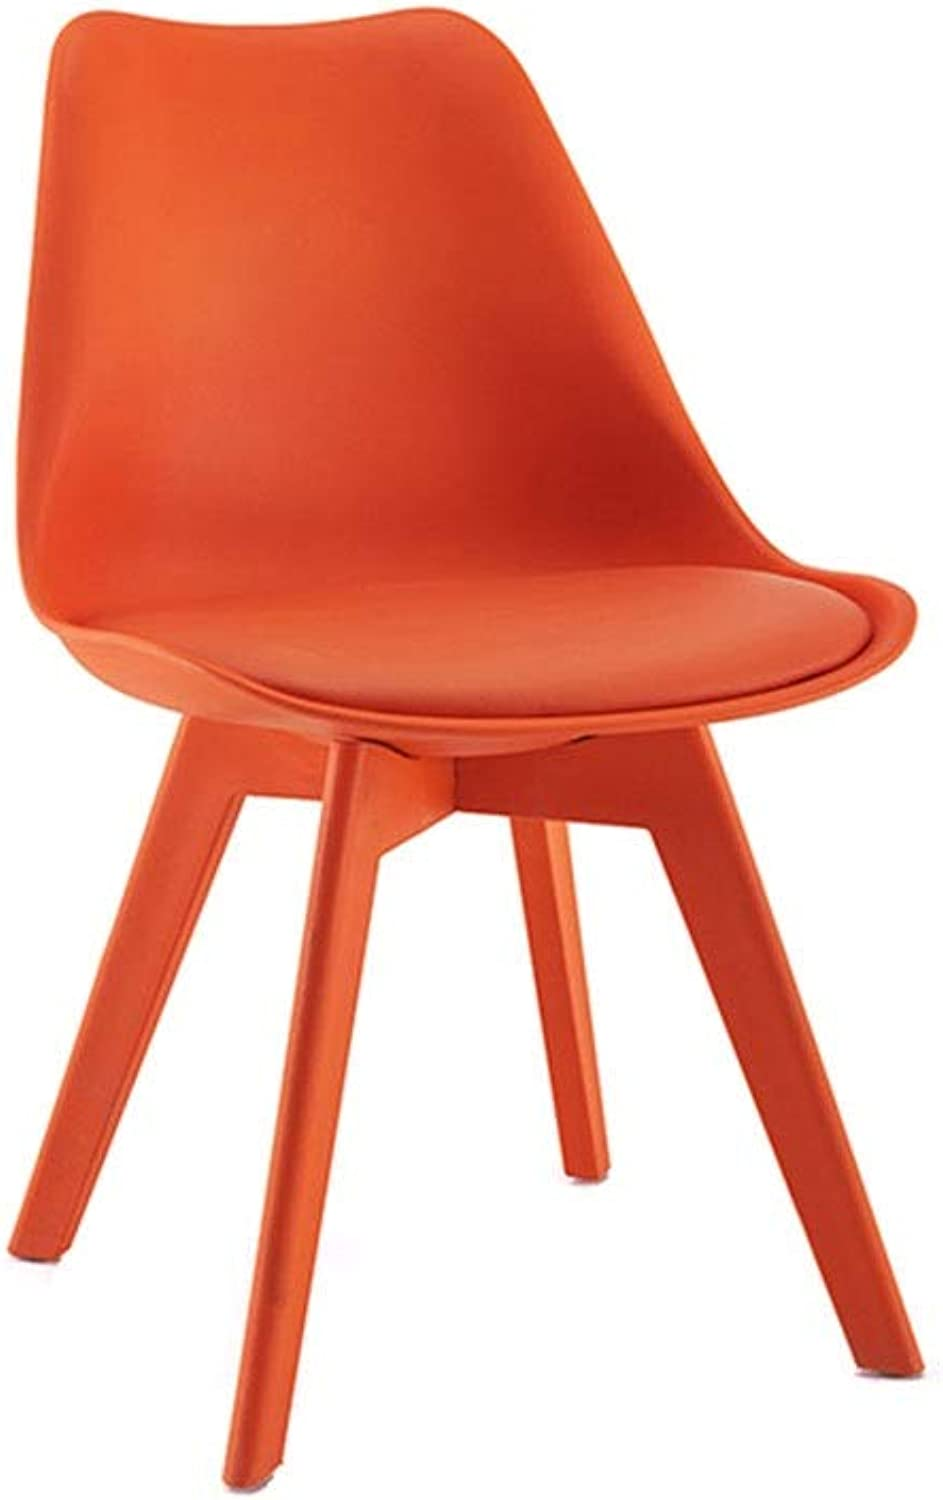 Zcxbhd Plastic Dining Chairs - Retro Natural Legs with Cushioned Pad Contemporary Designer for Office Lounge Dining Kitchen (color   orange)